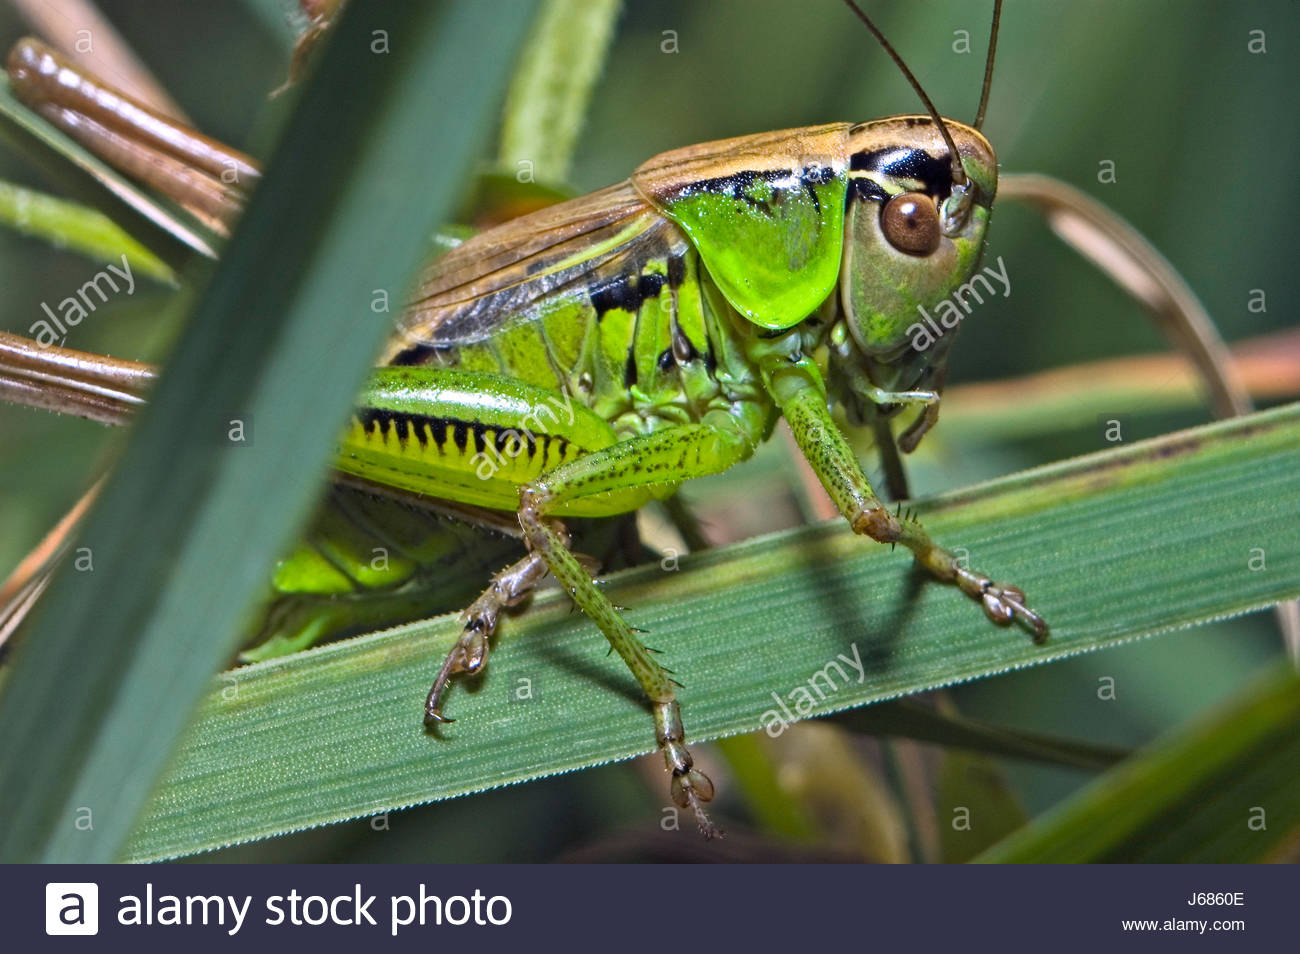 insects grasshopper masked legs eyes lateral claws hide camouflage grasshopper - Stock Image